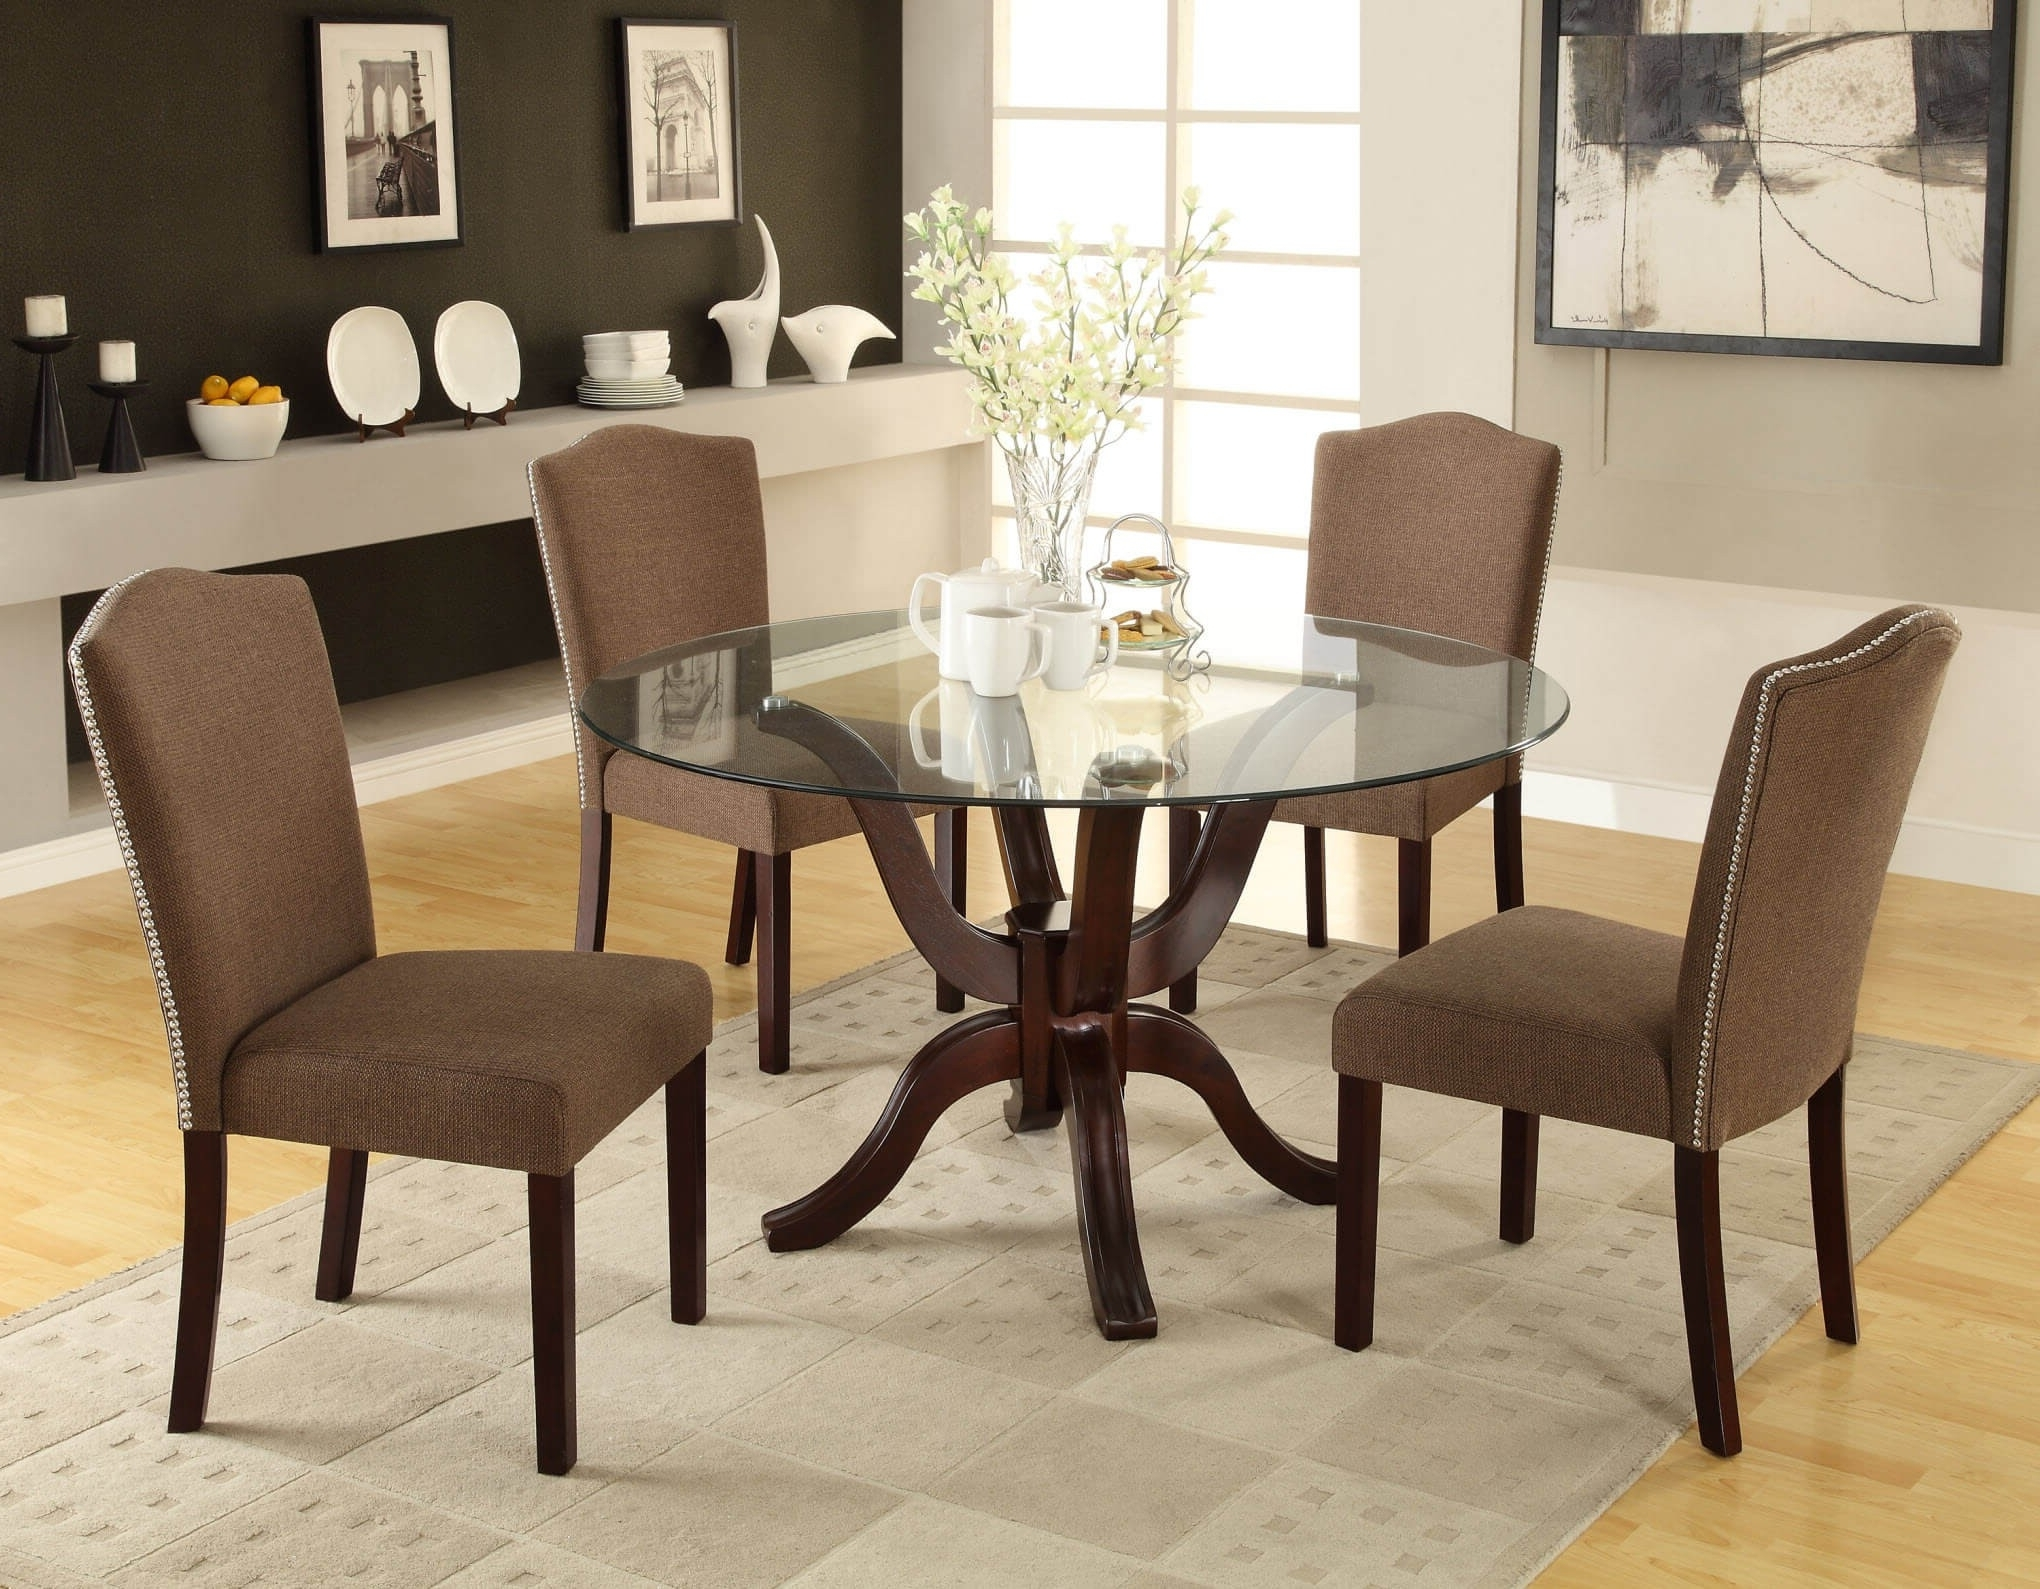 Cheap Glass Dining Tables And 6 Chairs Regarding Best And Newest Round Glass Dining Table Sets For 4 Best Of Round Glass Dining Table (Gallery 19 of 25)